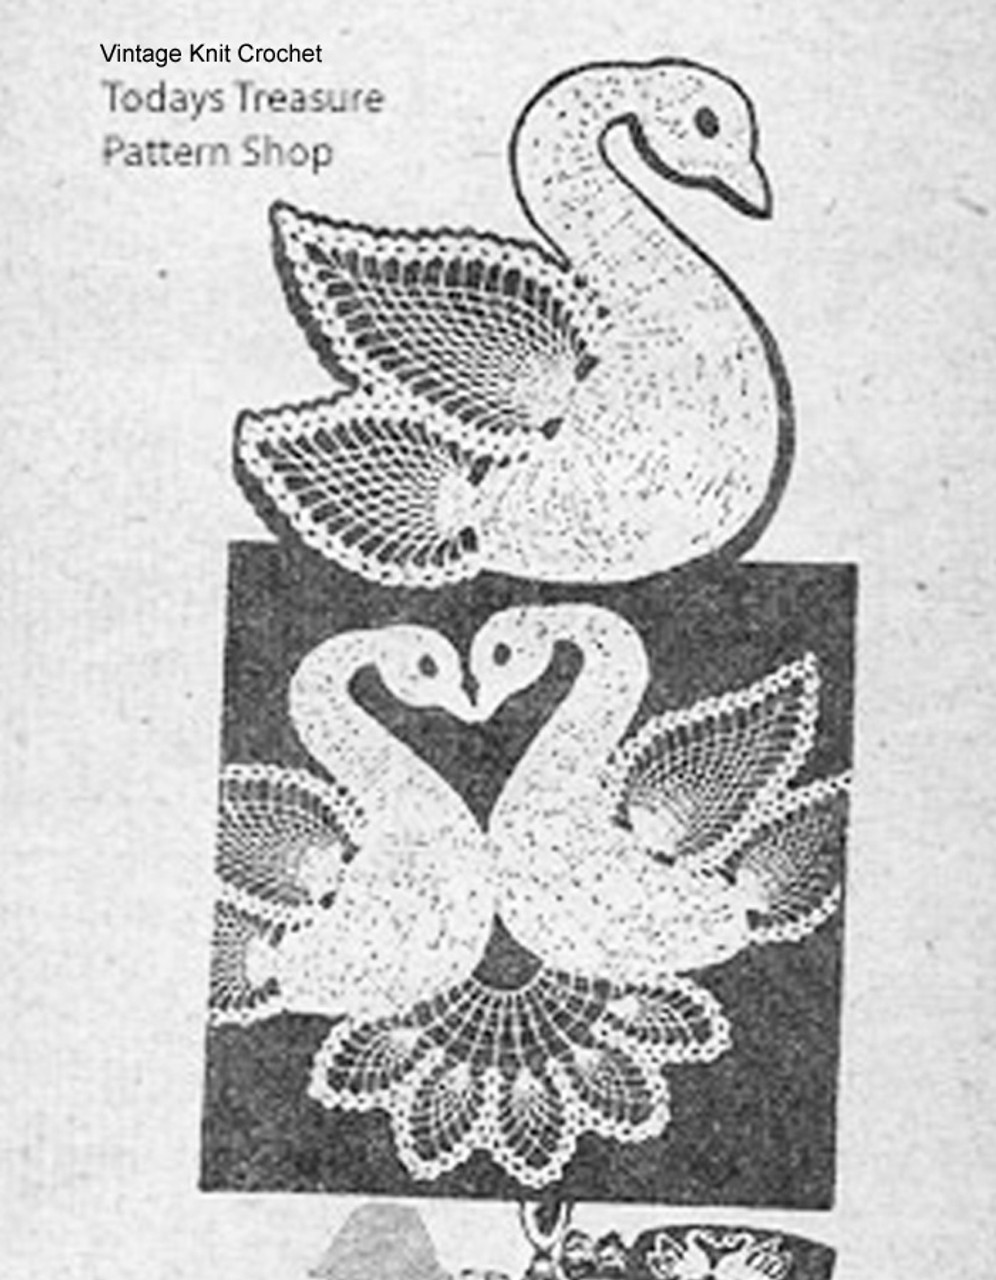 Vintage Chair Set Pattern, Twin Swans in Pineapple Stitch, Laura Wheeler 624